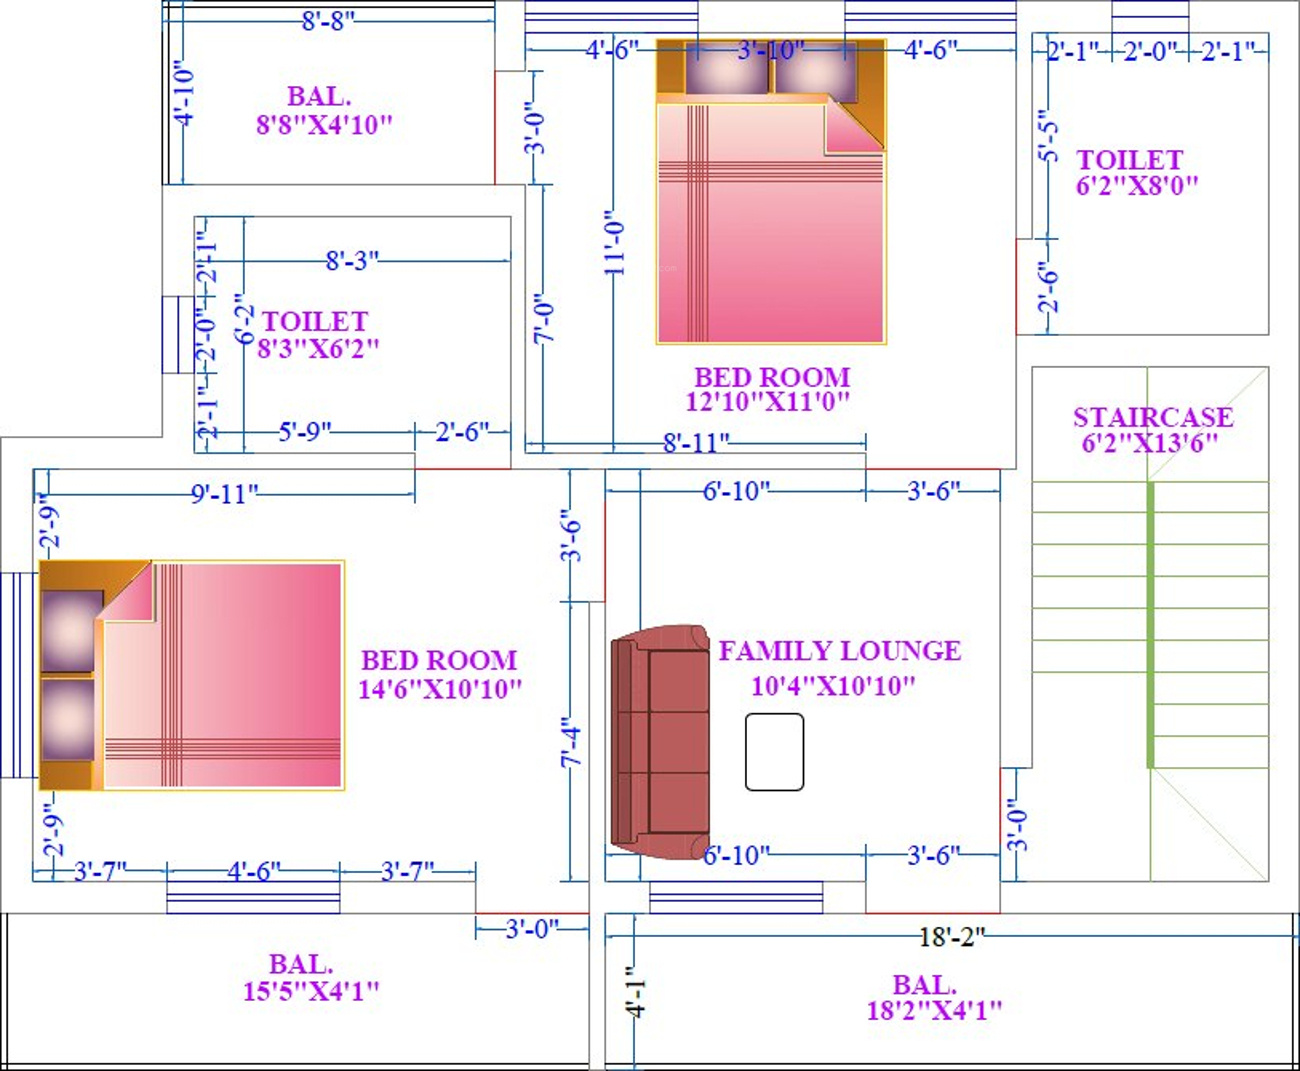 Duplex house plans in india for 1200 sq ft for Duplex house plans 1200 sq ft